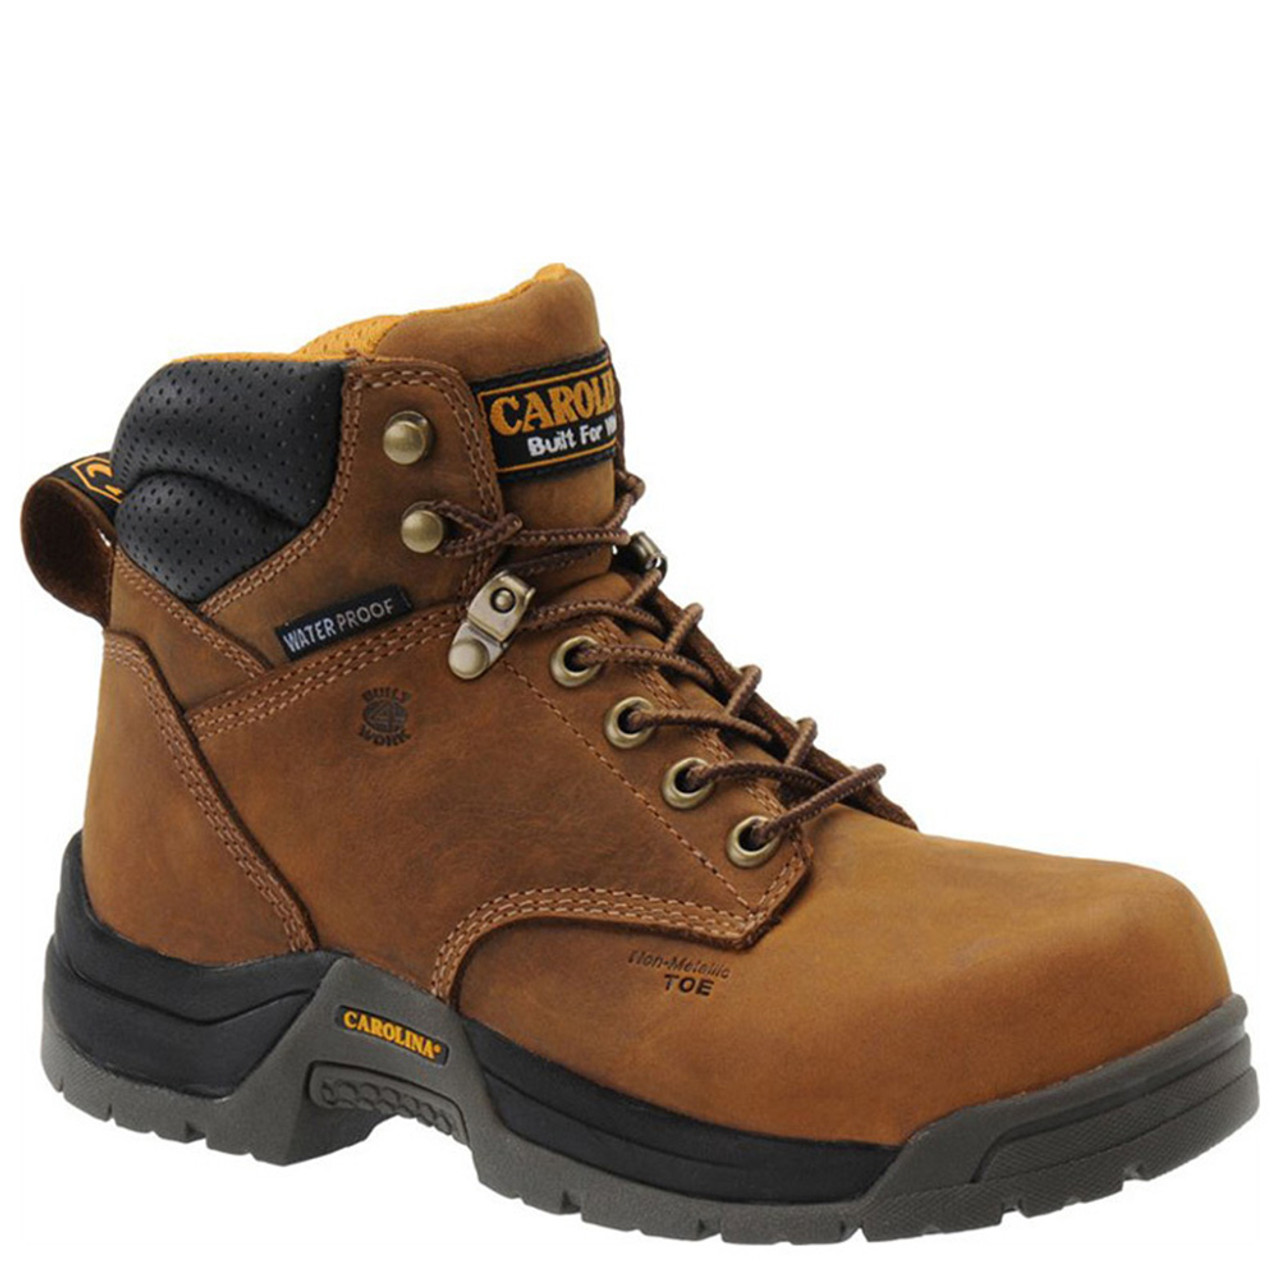 bf439beef4c Carolina CA1620 Women's RALEIGH BROAD TOE Composite Toe Non-Insulated  Waterproof Work Boots